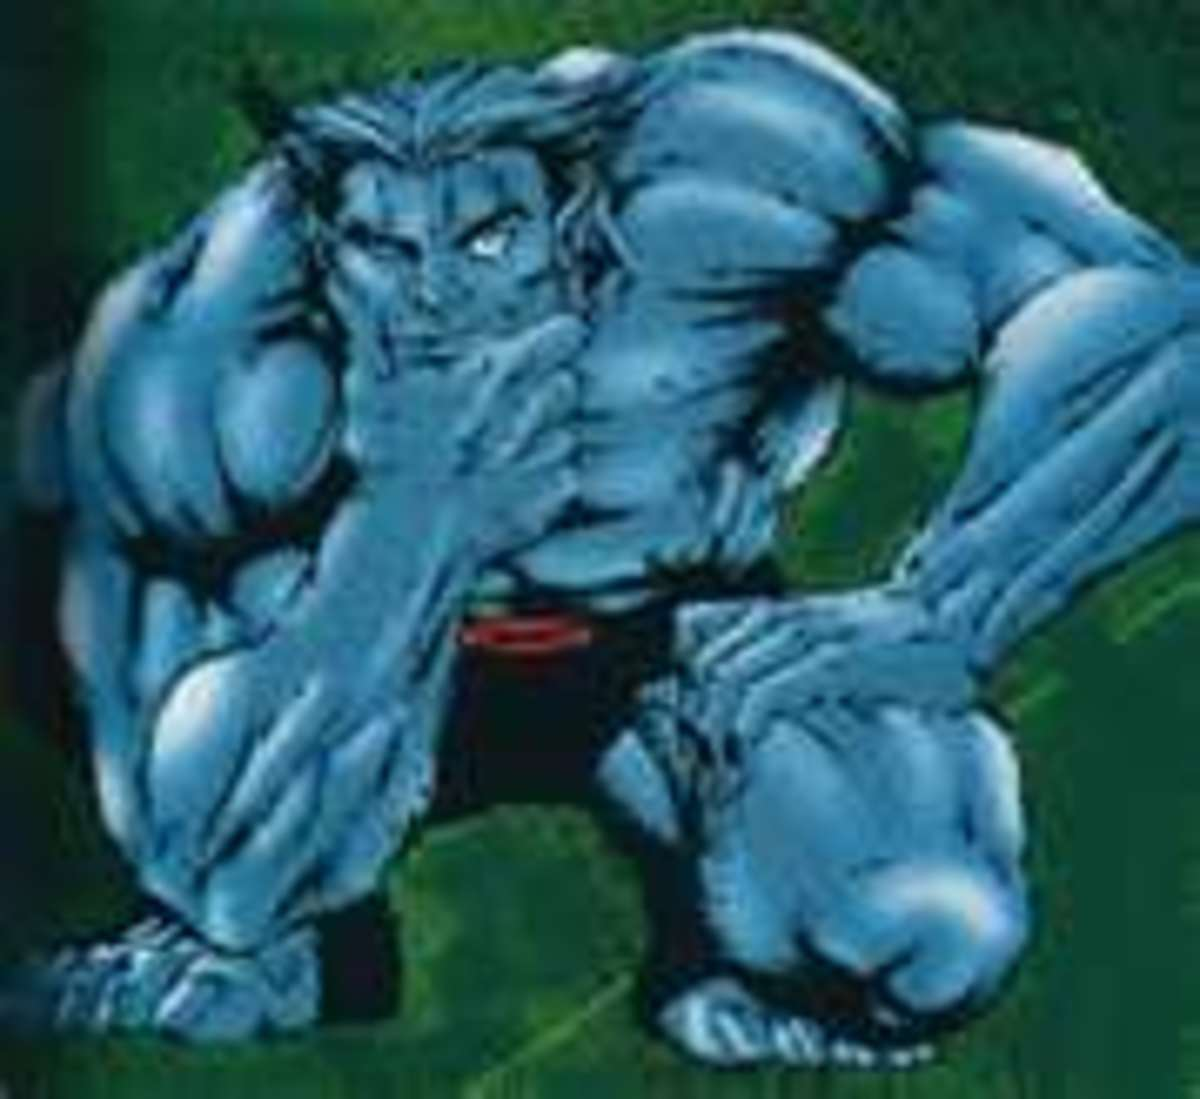 The Beast is wise, strong and agile. His attributes make him an idea X-man